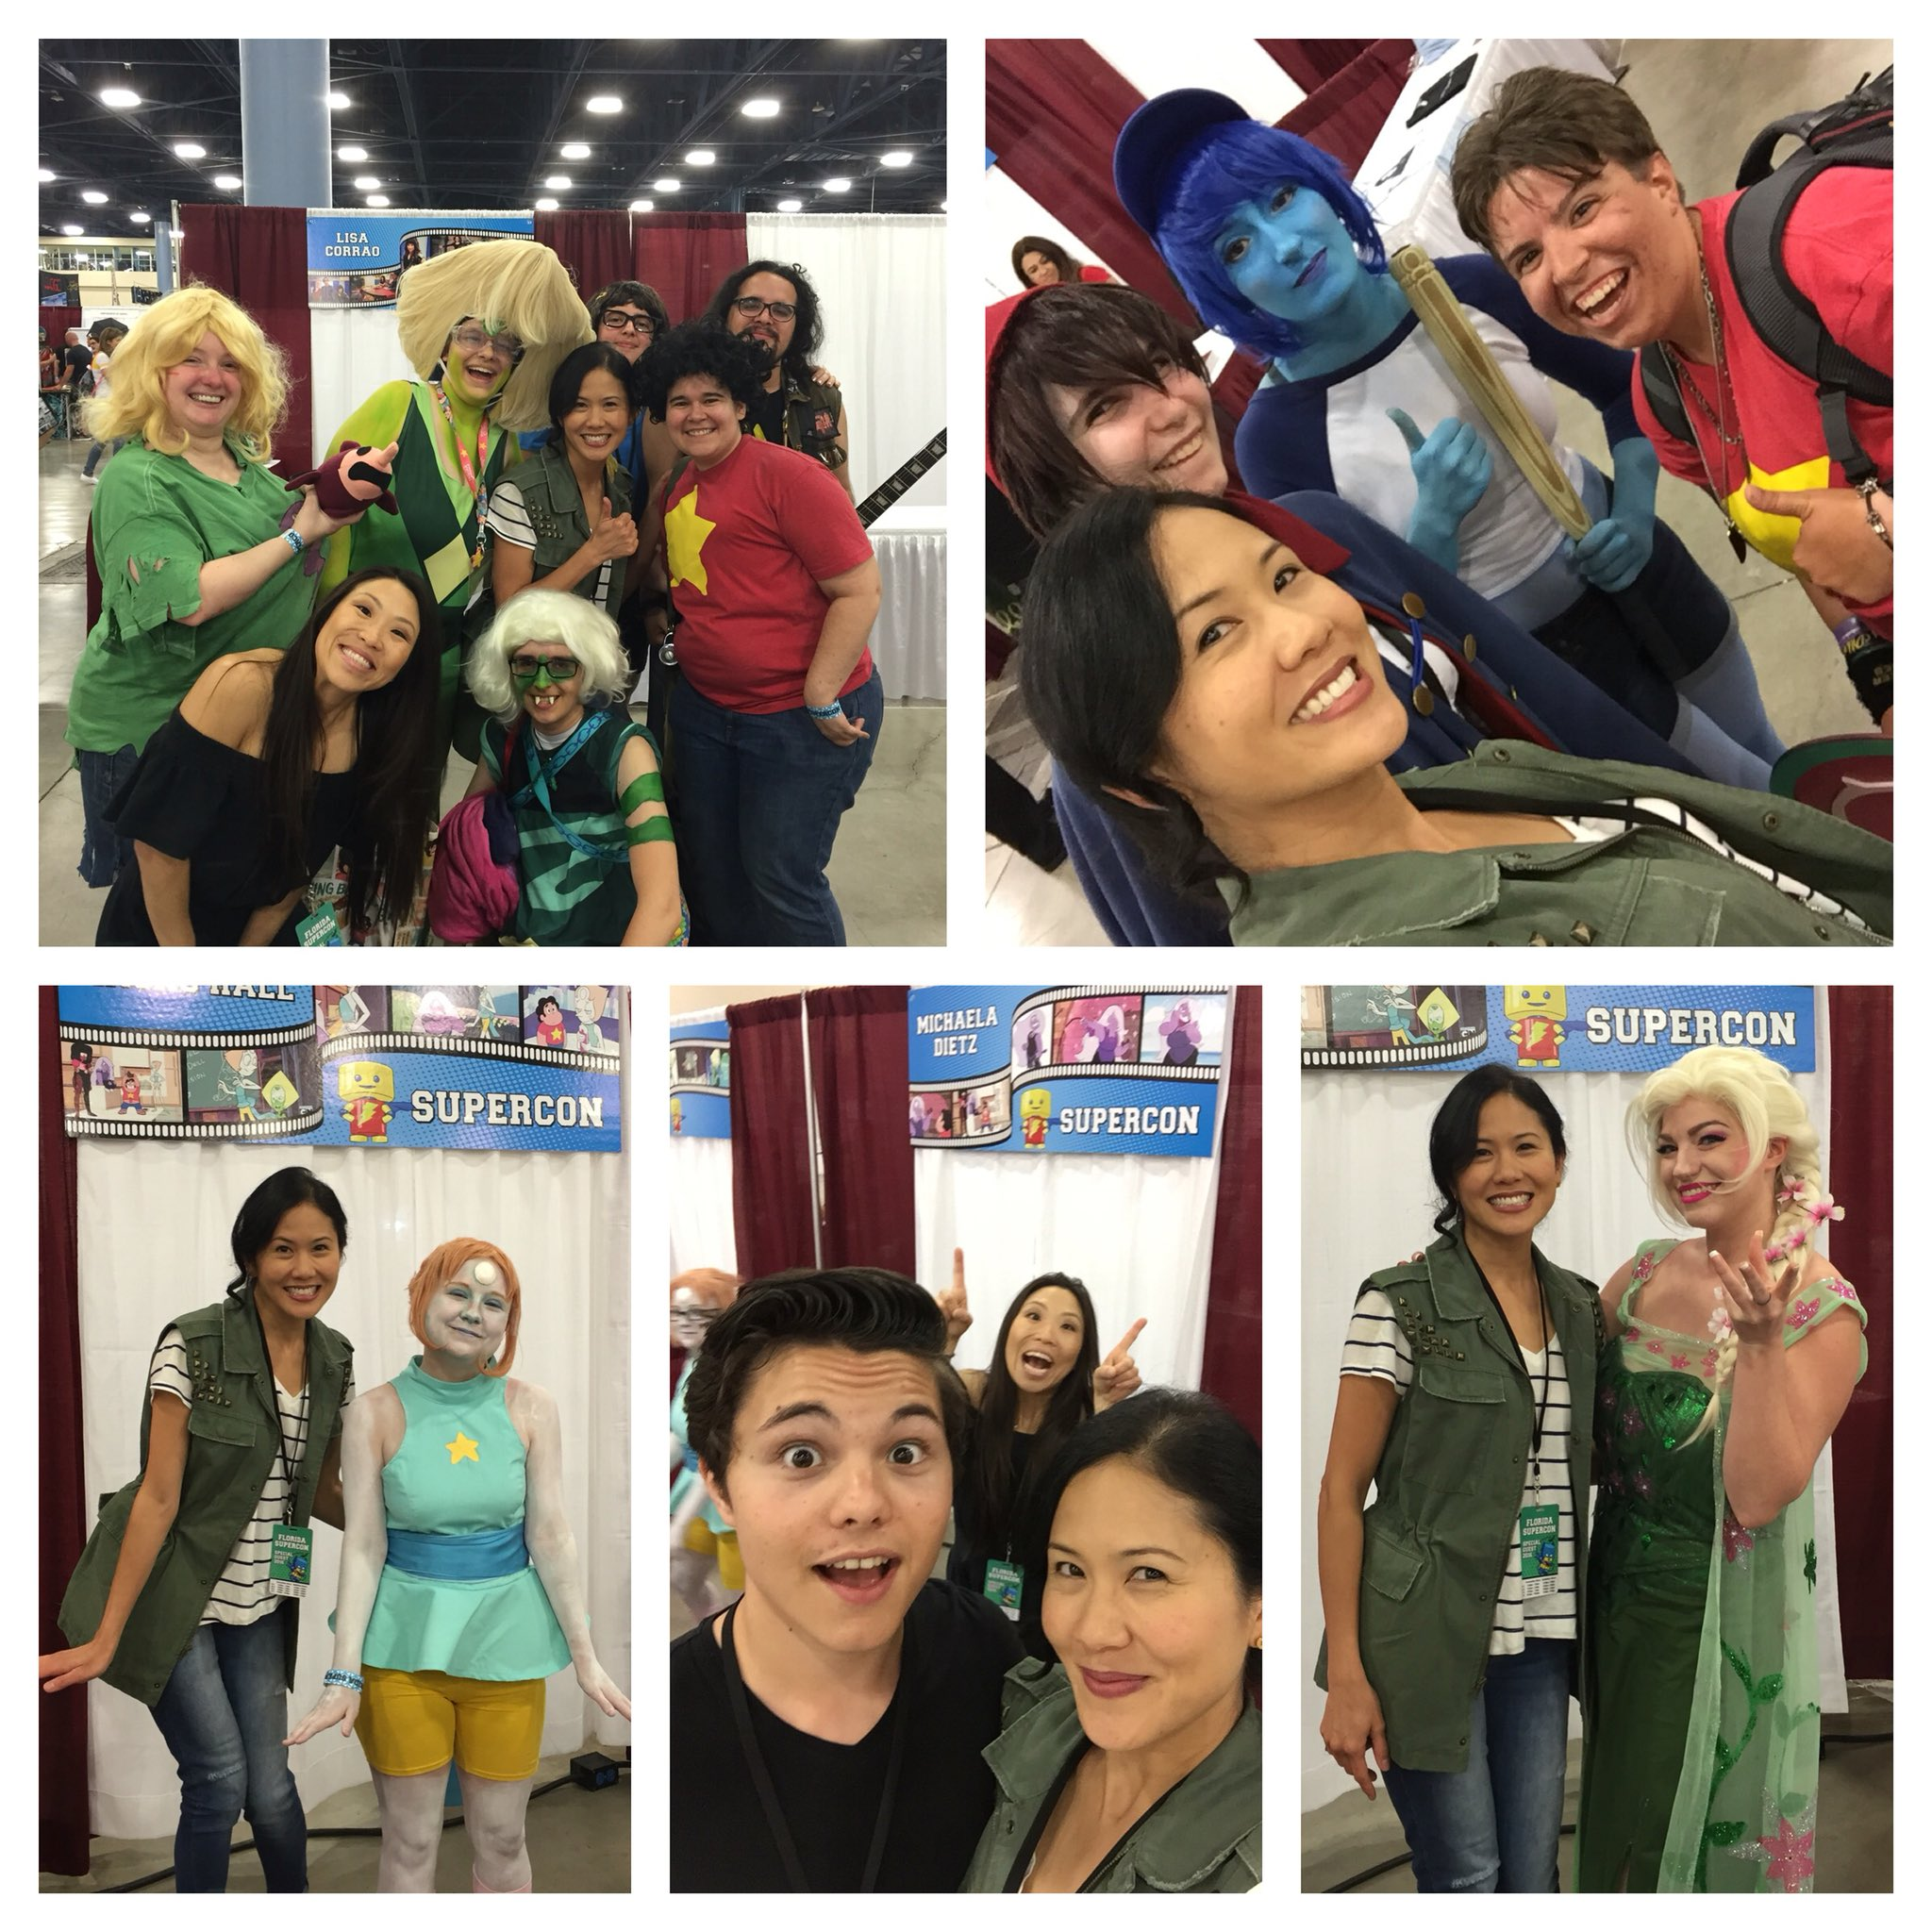 """A few highlights from 1st day @FloridaSupercon! Hope to see more #StevenUniverse #cosplay 2day! SU fans are amazing!"""